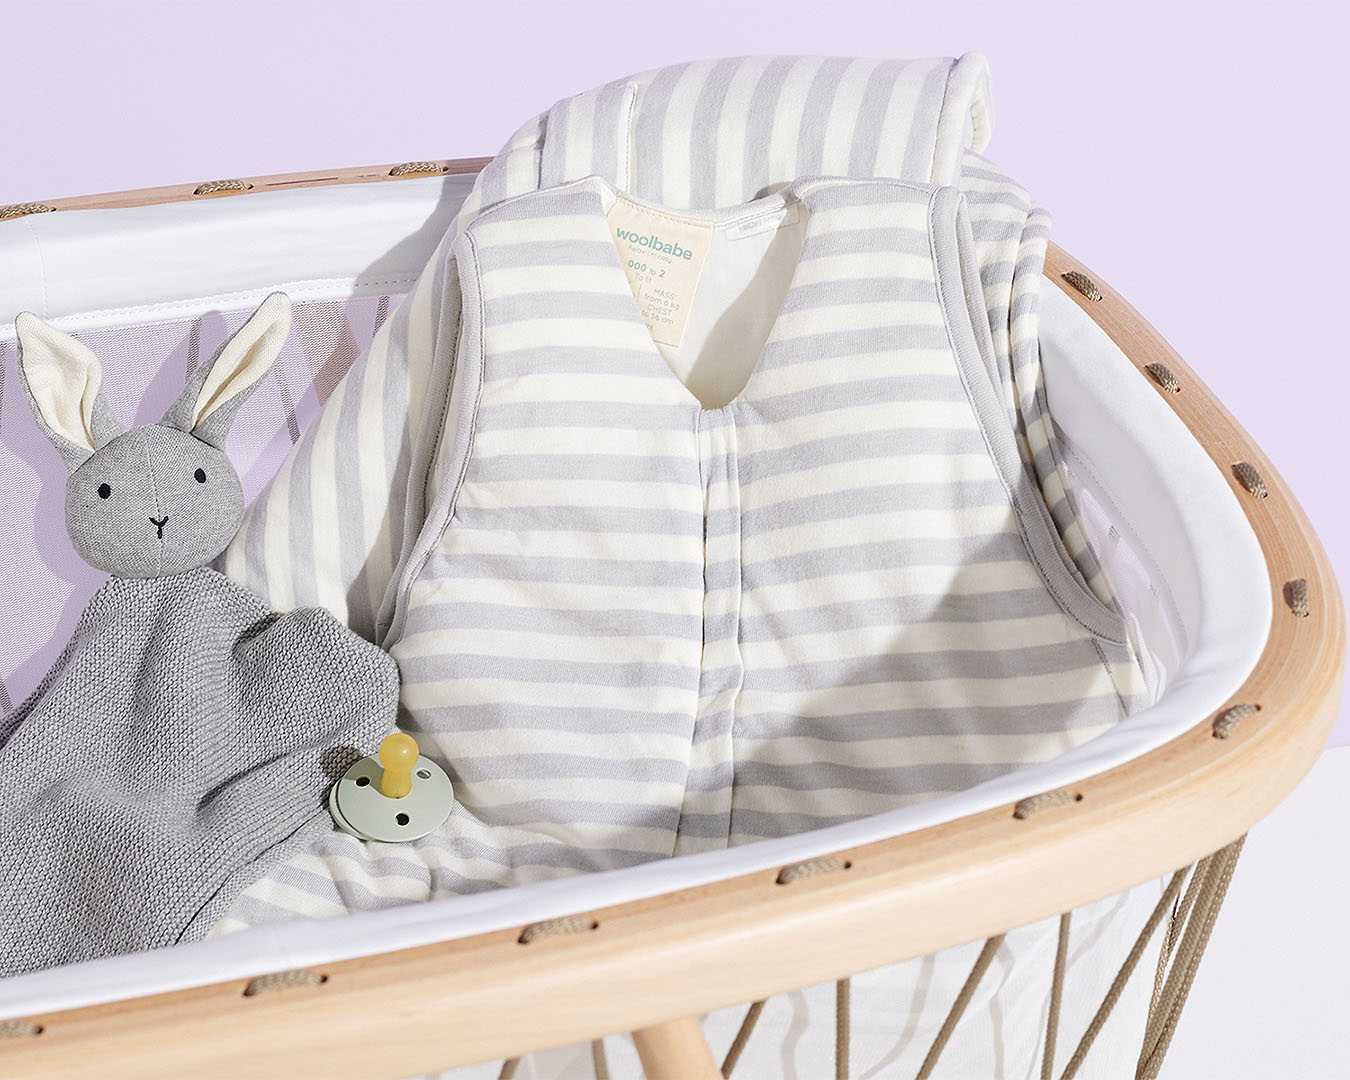 A cot with a sleeping bag babygro and stuffed bunny inside.